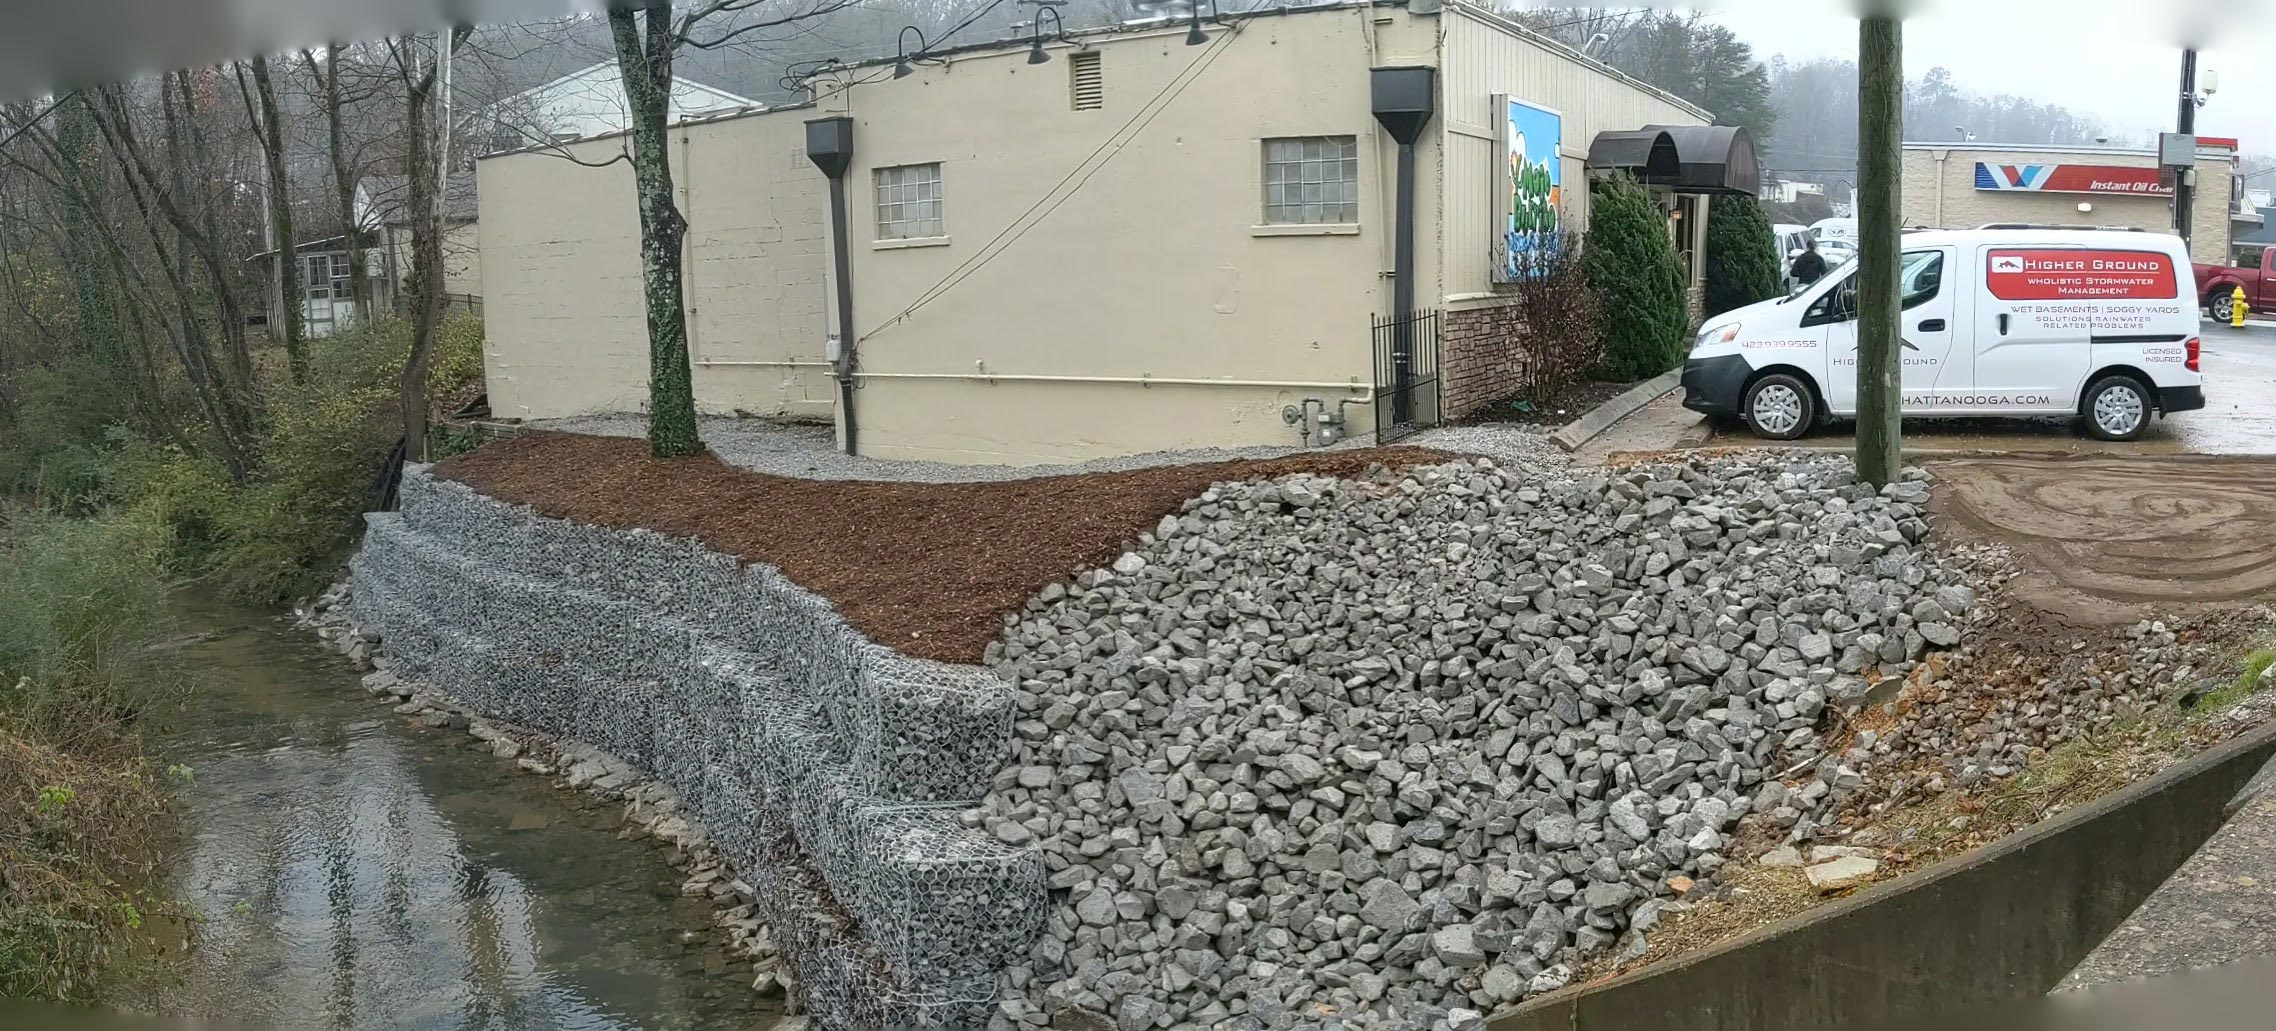 Gabion stone retaining wall at Mojo Burrito | Higher Ground of Chattanooga